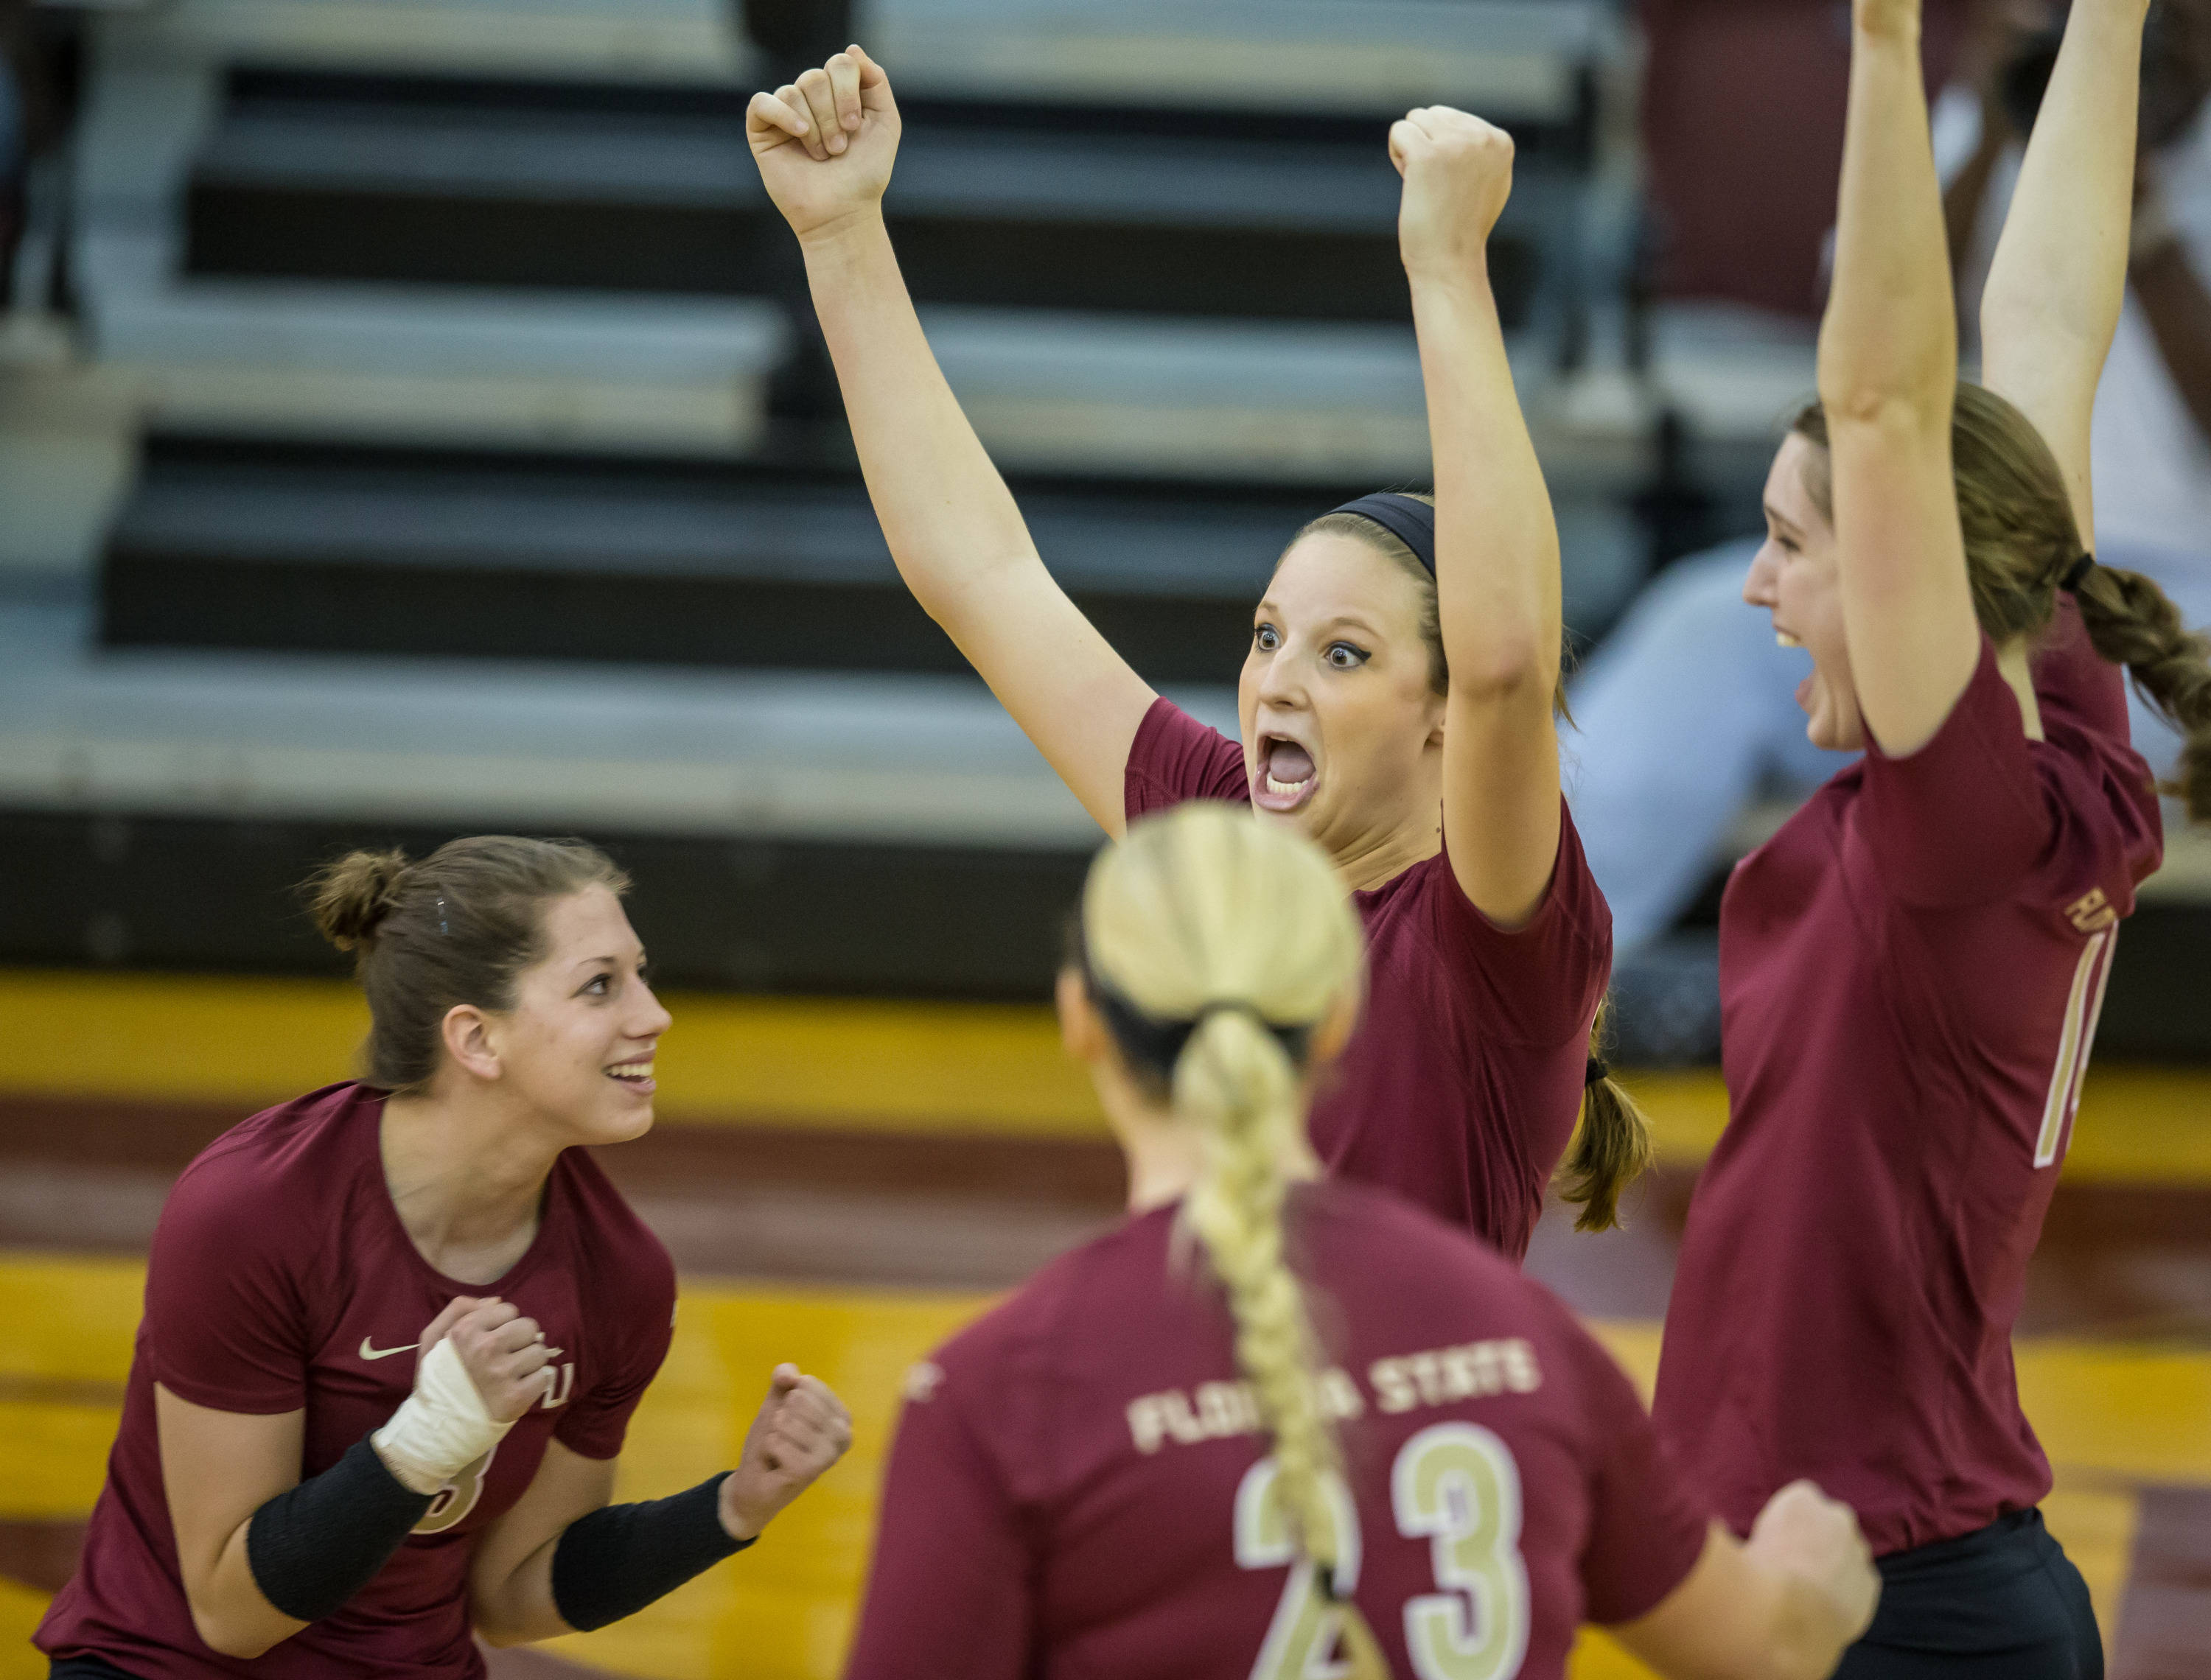 Laura Dadowski (13), Nicole Walch (5), and teammates celebrate another FSU point.